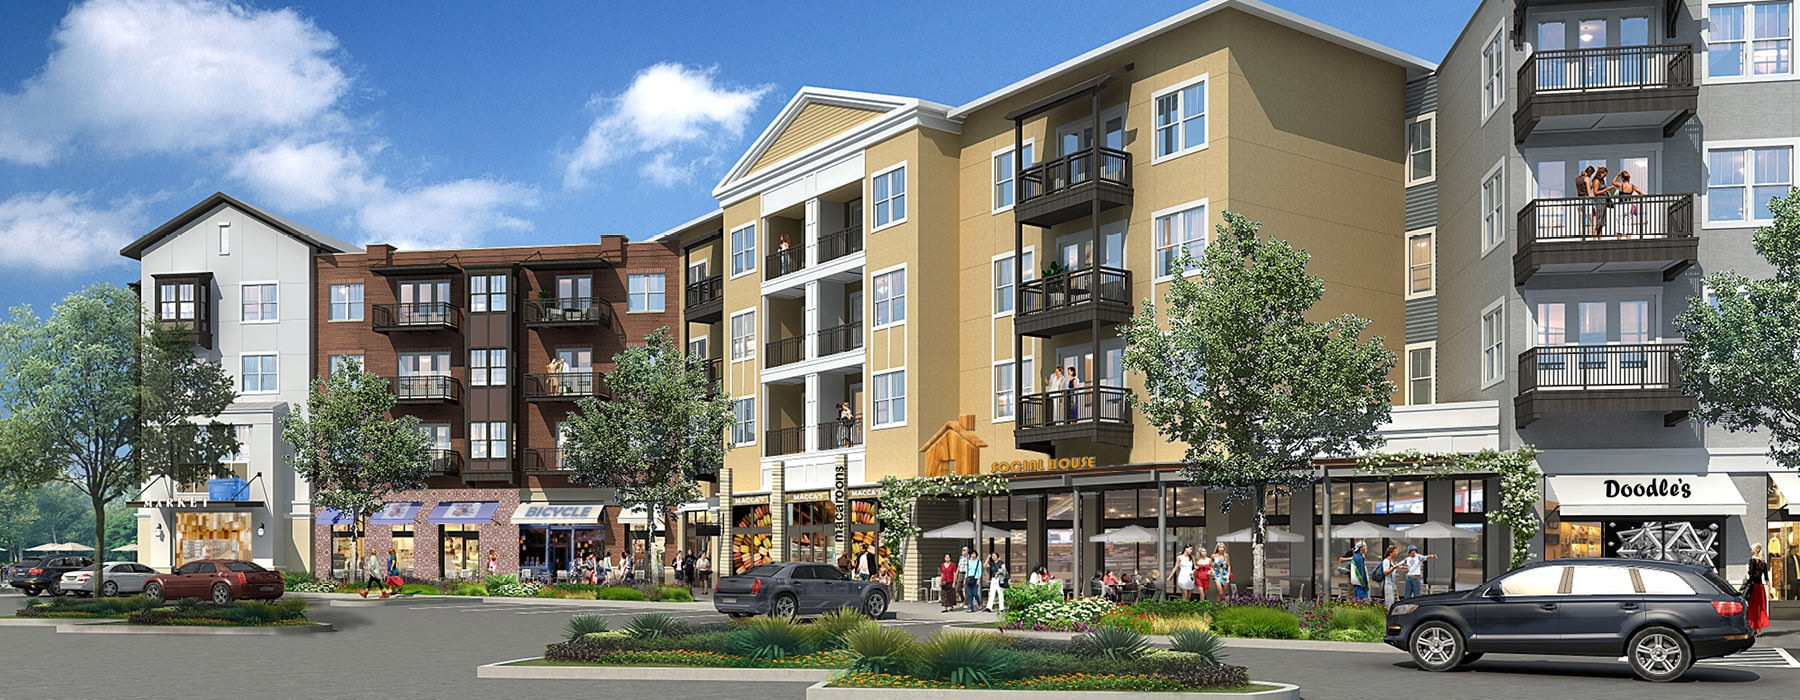 Epicenter rendering which includes 14 local retailers